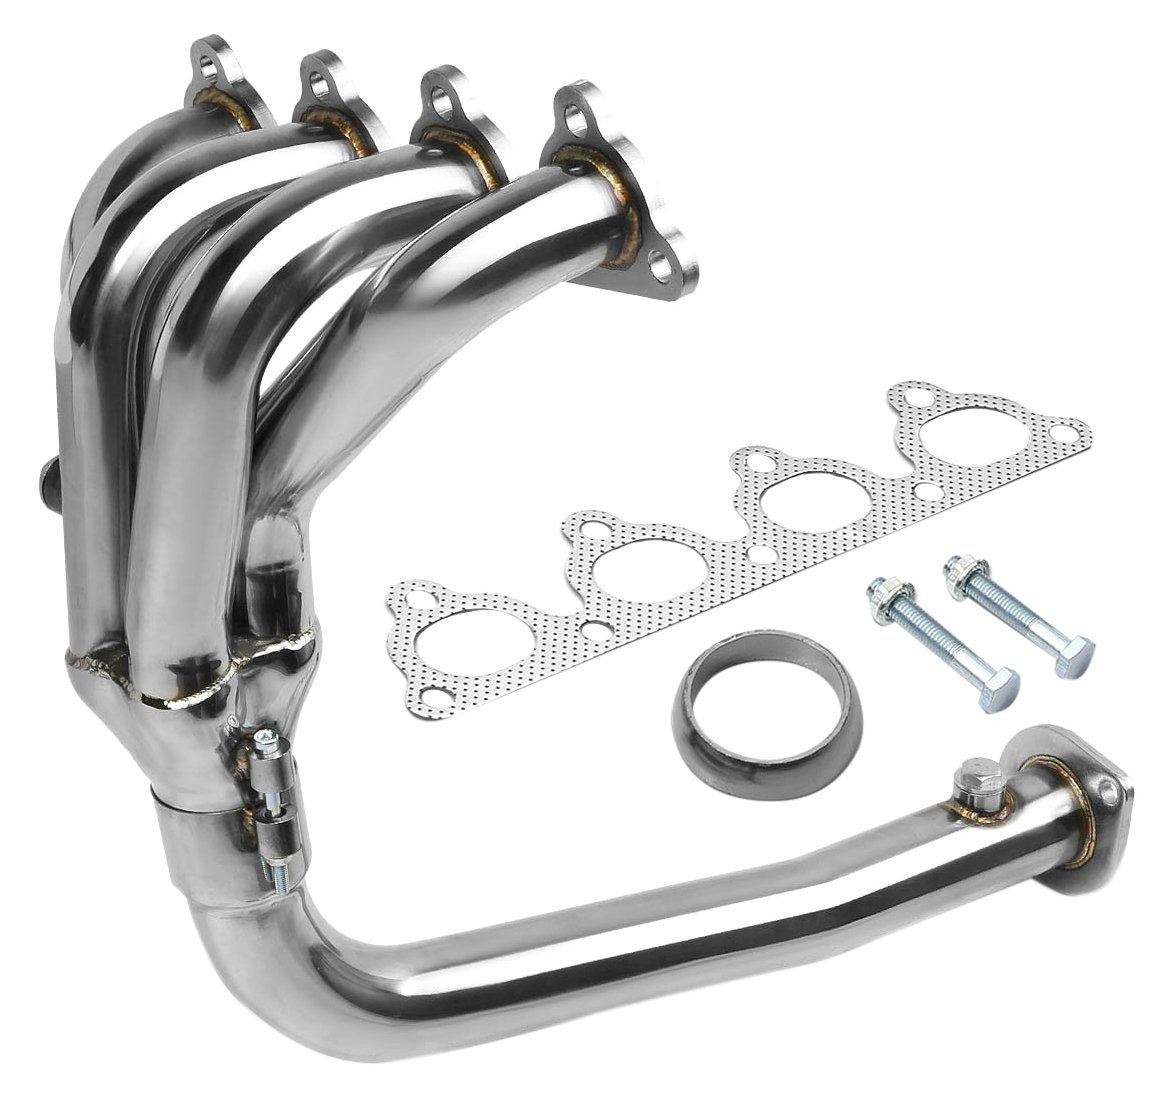 Polished Chrome DNA MOTORING HDS-HC88-41 Stainless Steel 4-2-1 Exhaust Header for Honda D-Series